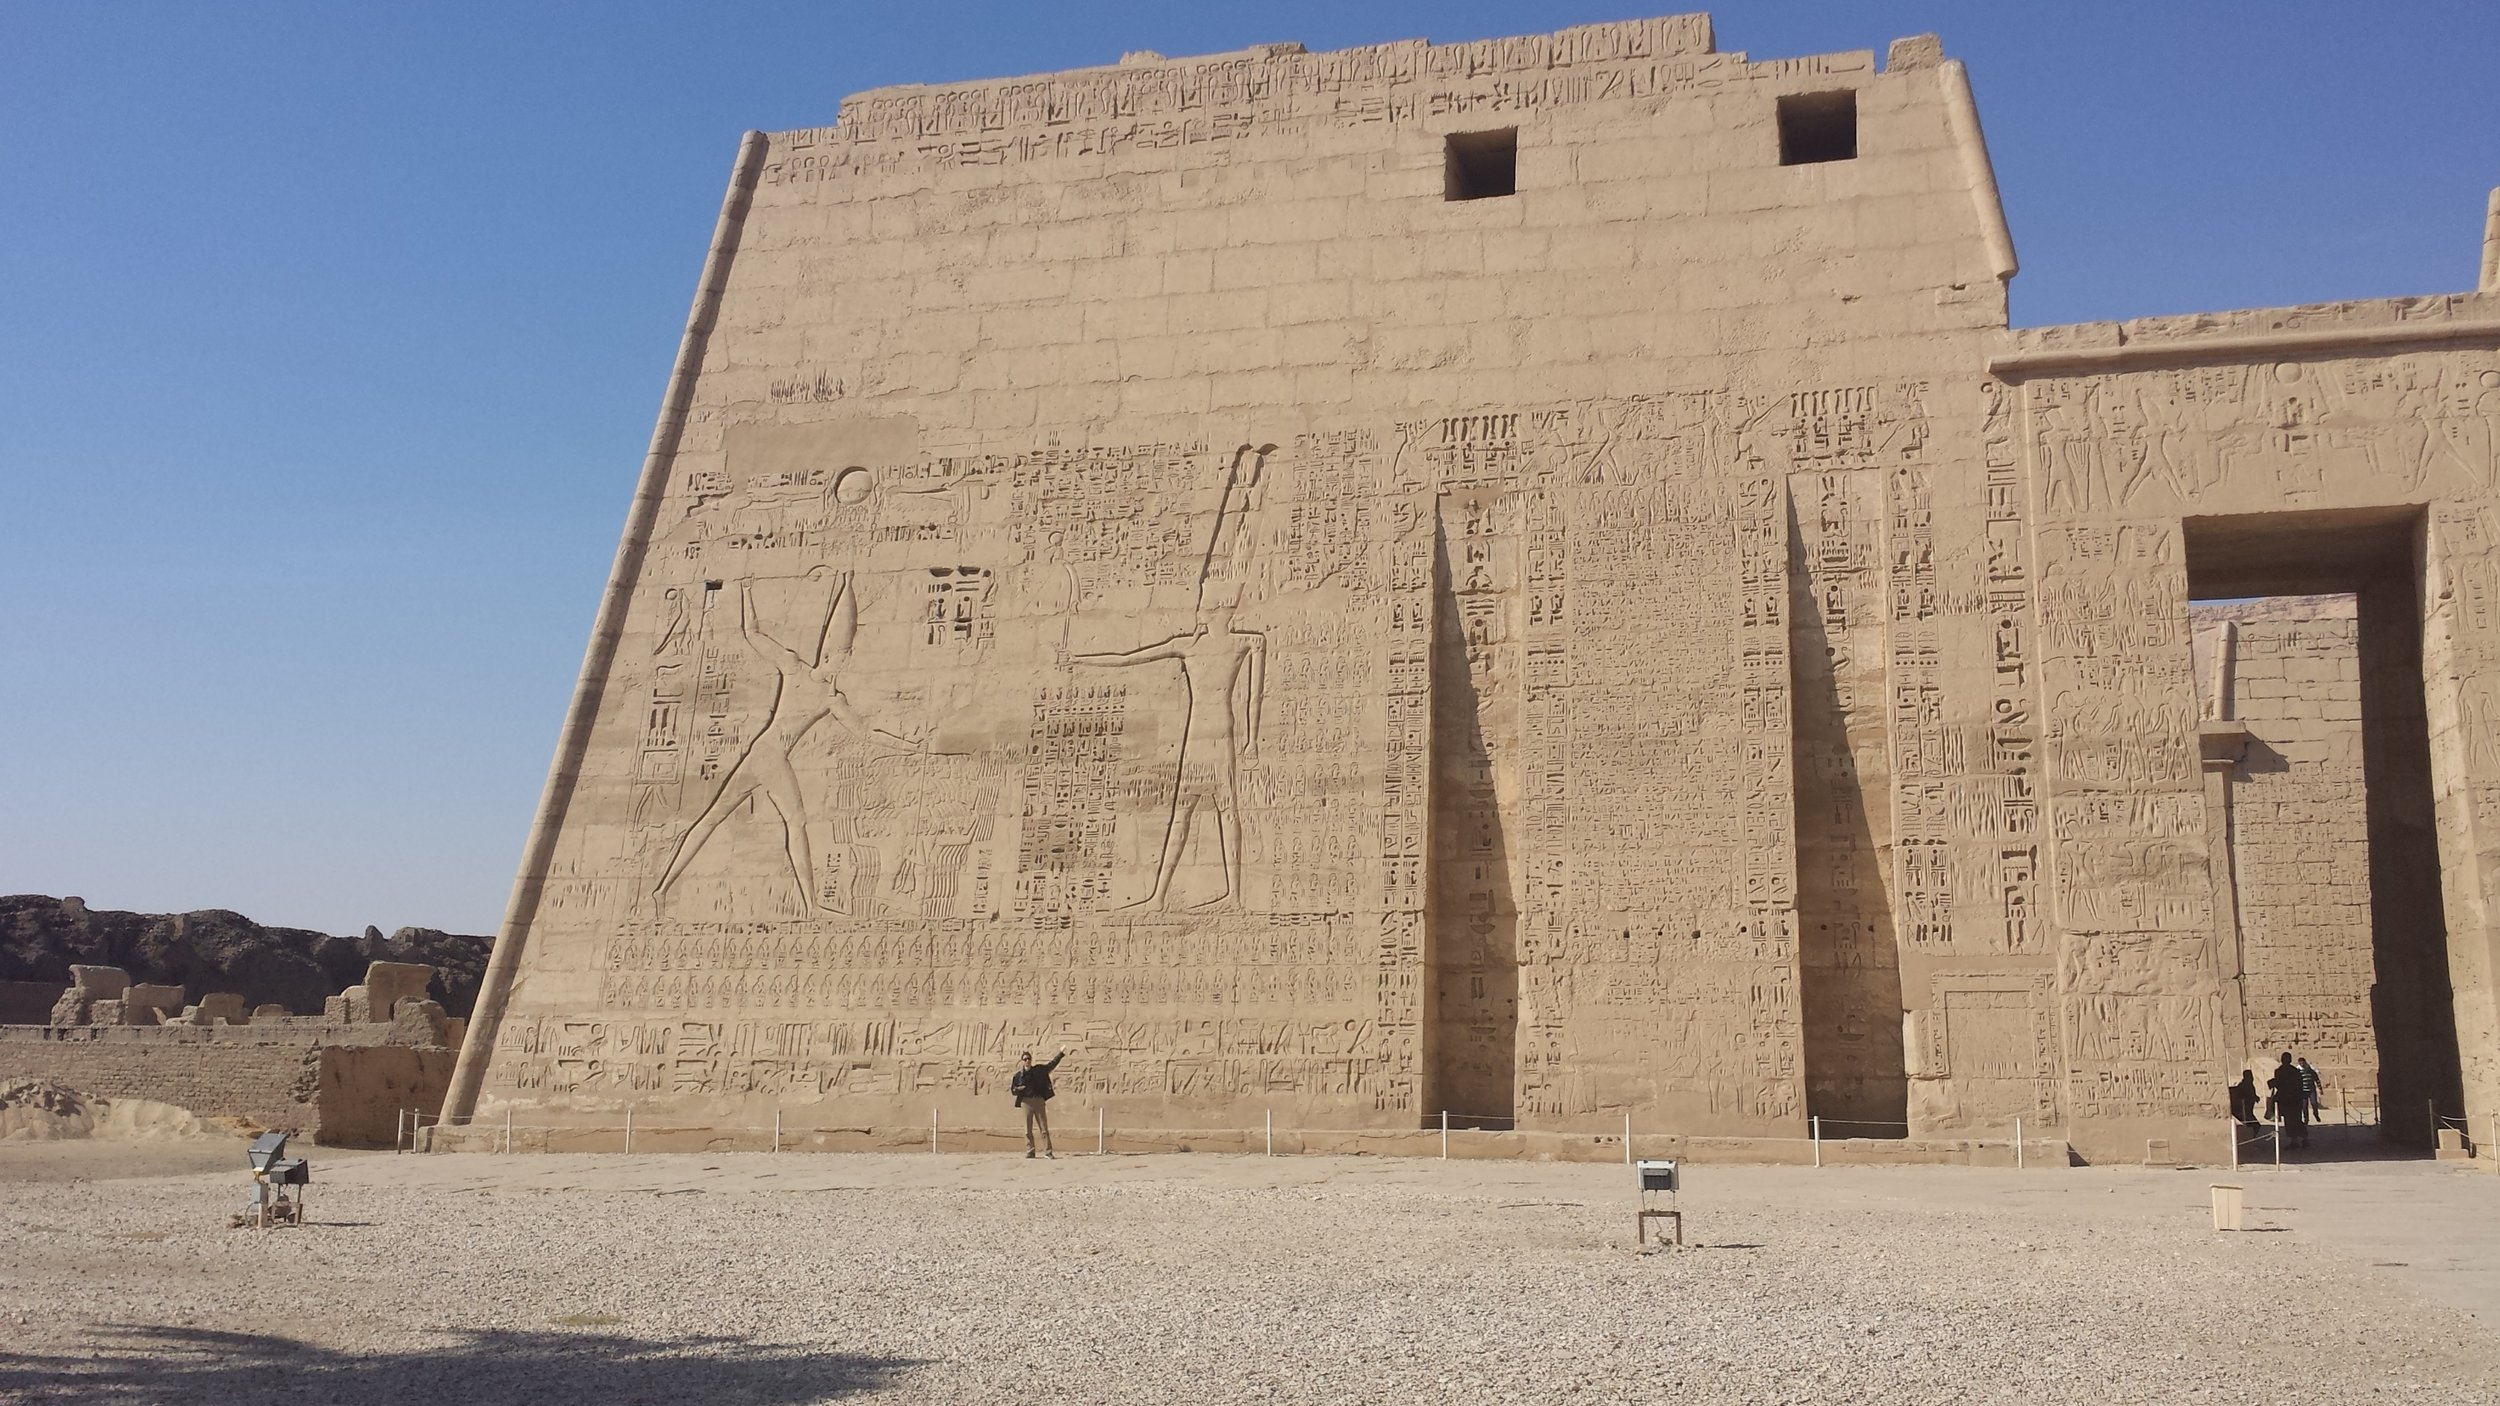 The entry pylon to Habu temple. Some fool is standing in front of it to give a sense of scale. It depicts Ramses III making offering to Ra.